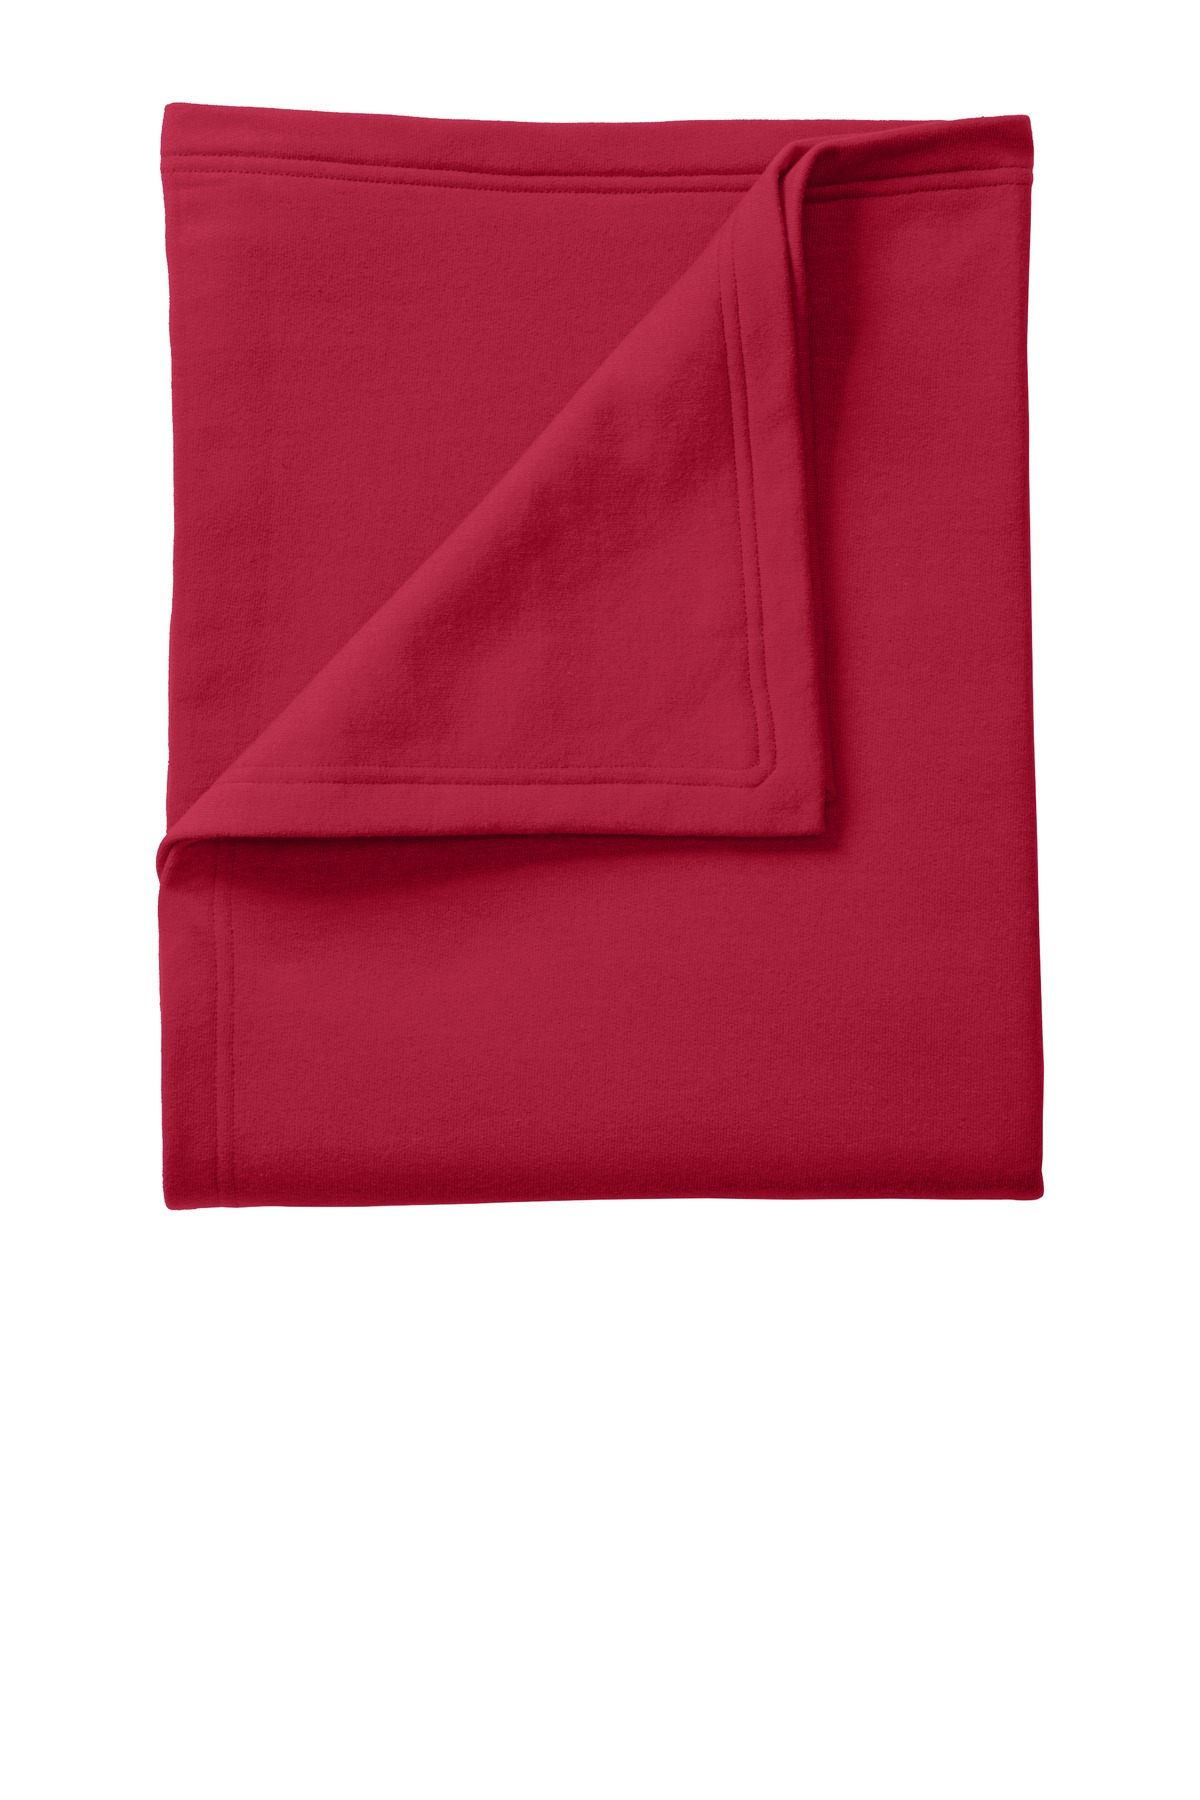 Port & Company ®  Core Fleece Sweatshirt Blanket. BP78 - Red